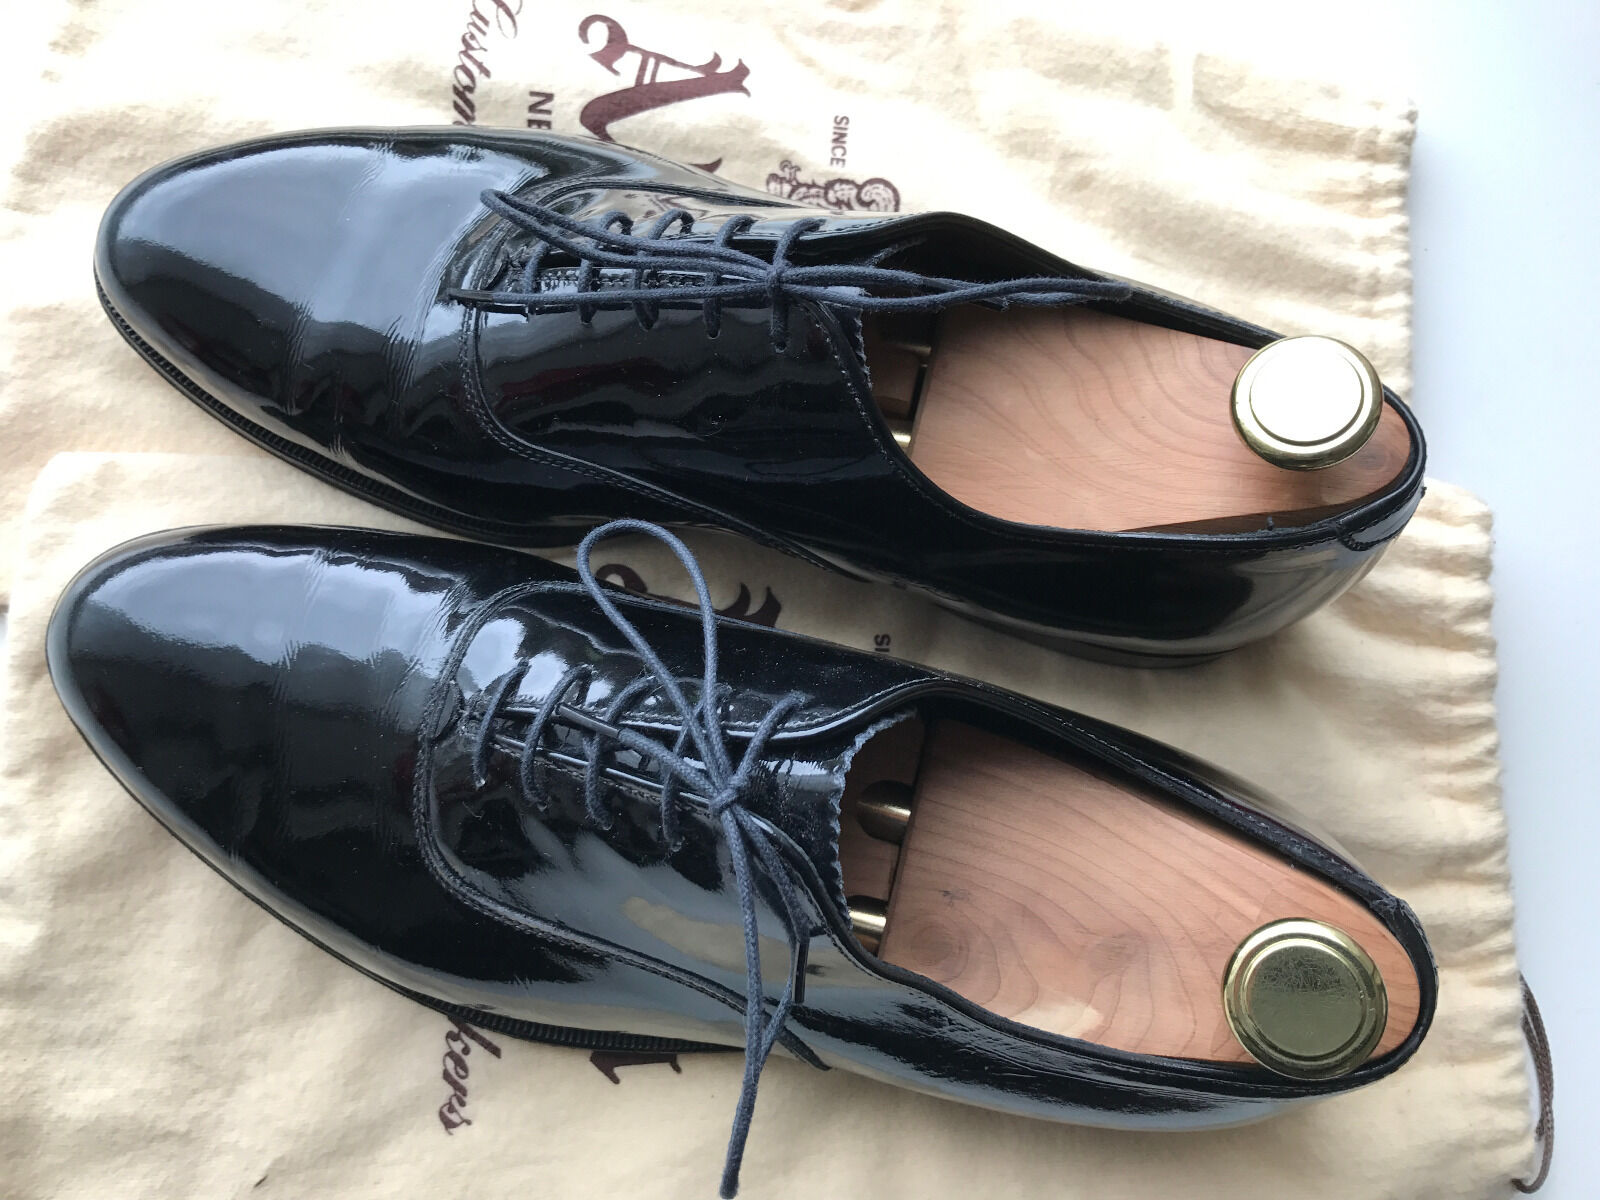 fino al 60% di sconto Alden Plain Plain Plain Toe Bal Oxford (Lace-Up Leather nero Calfskin)  US 10 C E (9309)  in linea